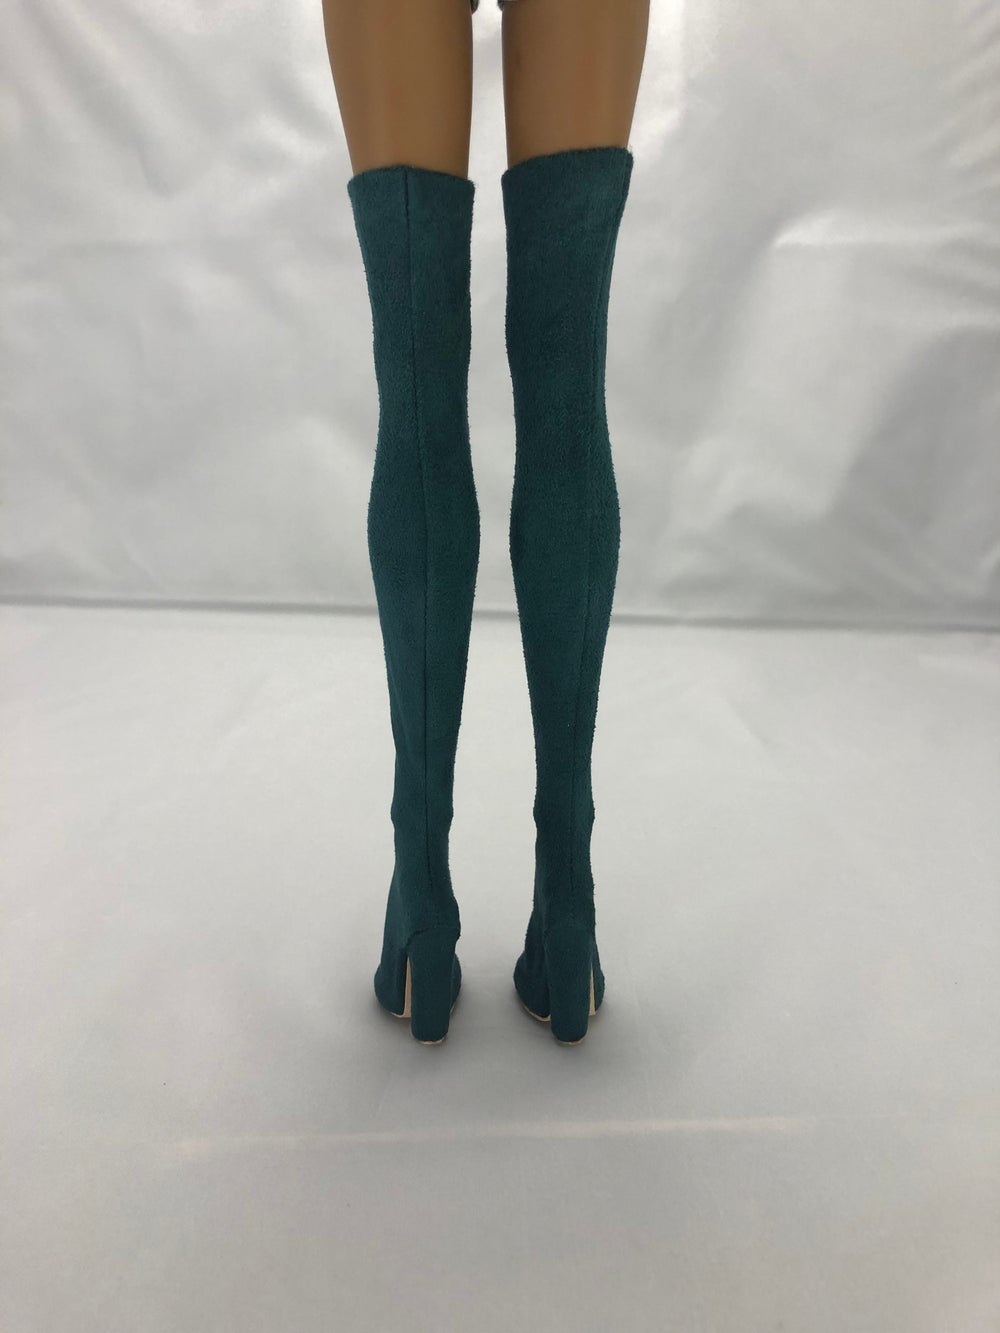 Teal Suede Thigh High Boots: Pidgin Doll P3